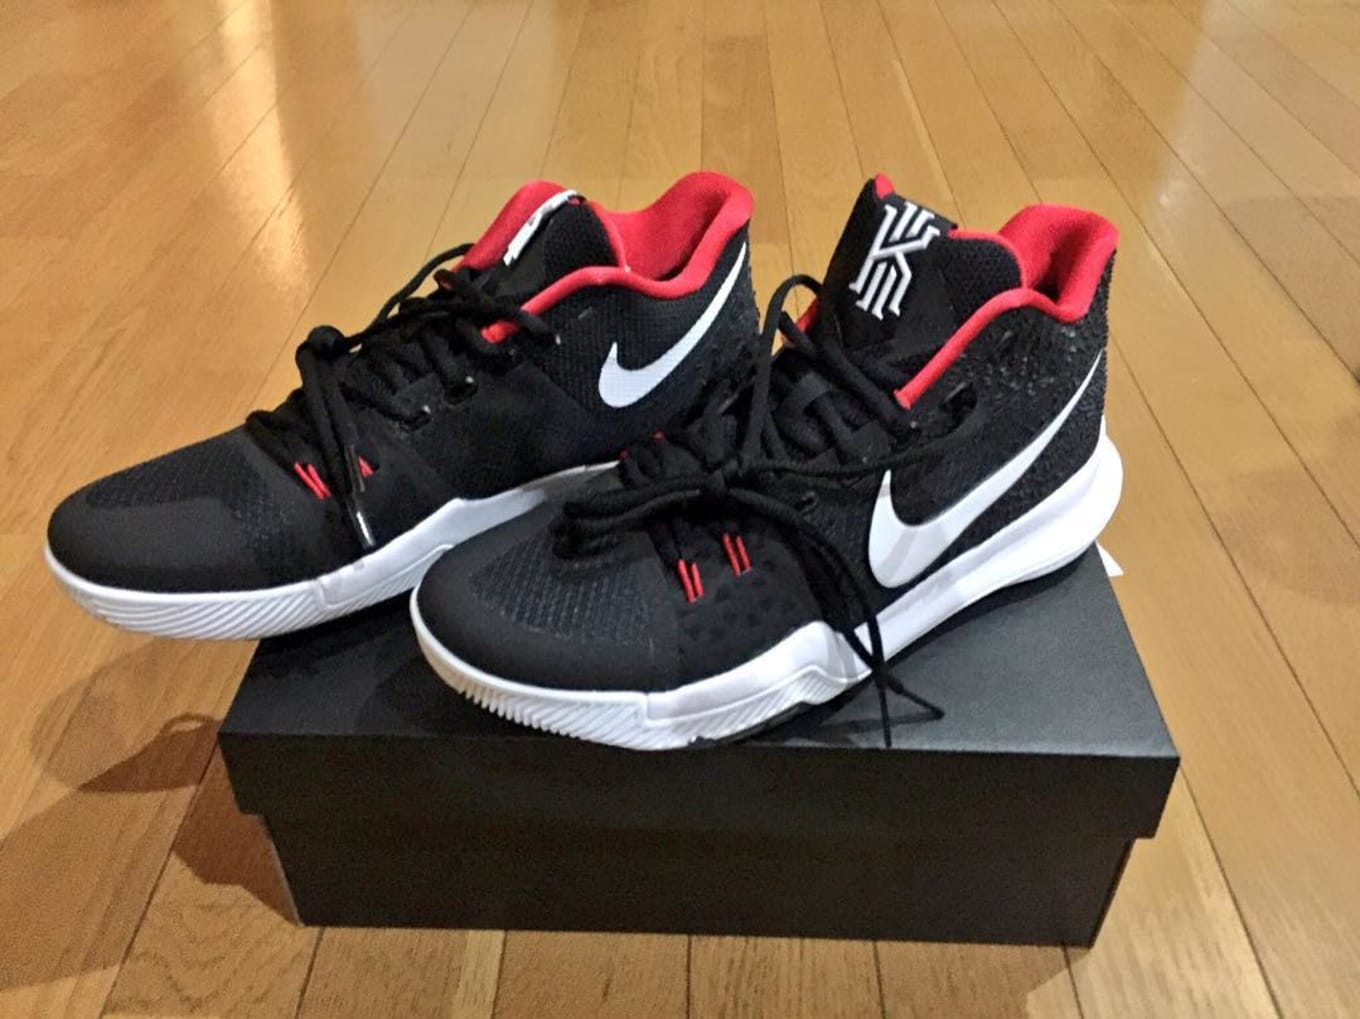 2dd45203f8d64 The Best Nike ID Kyrie 3 Designs | Sole Collector